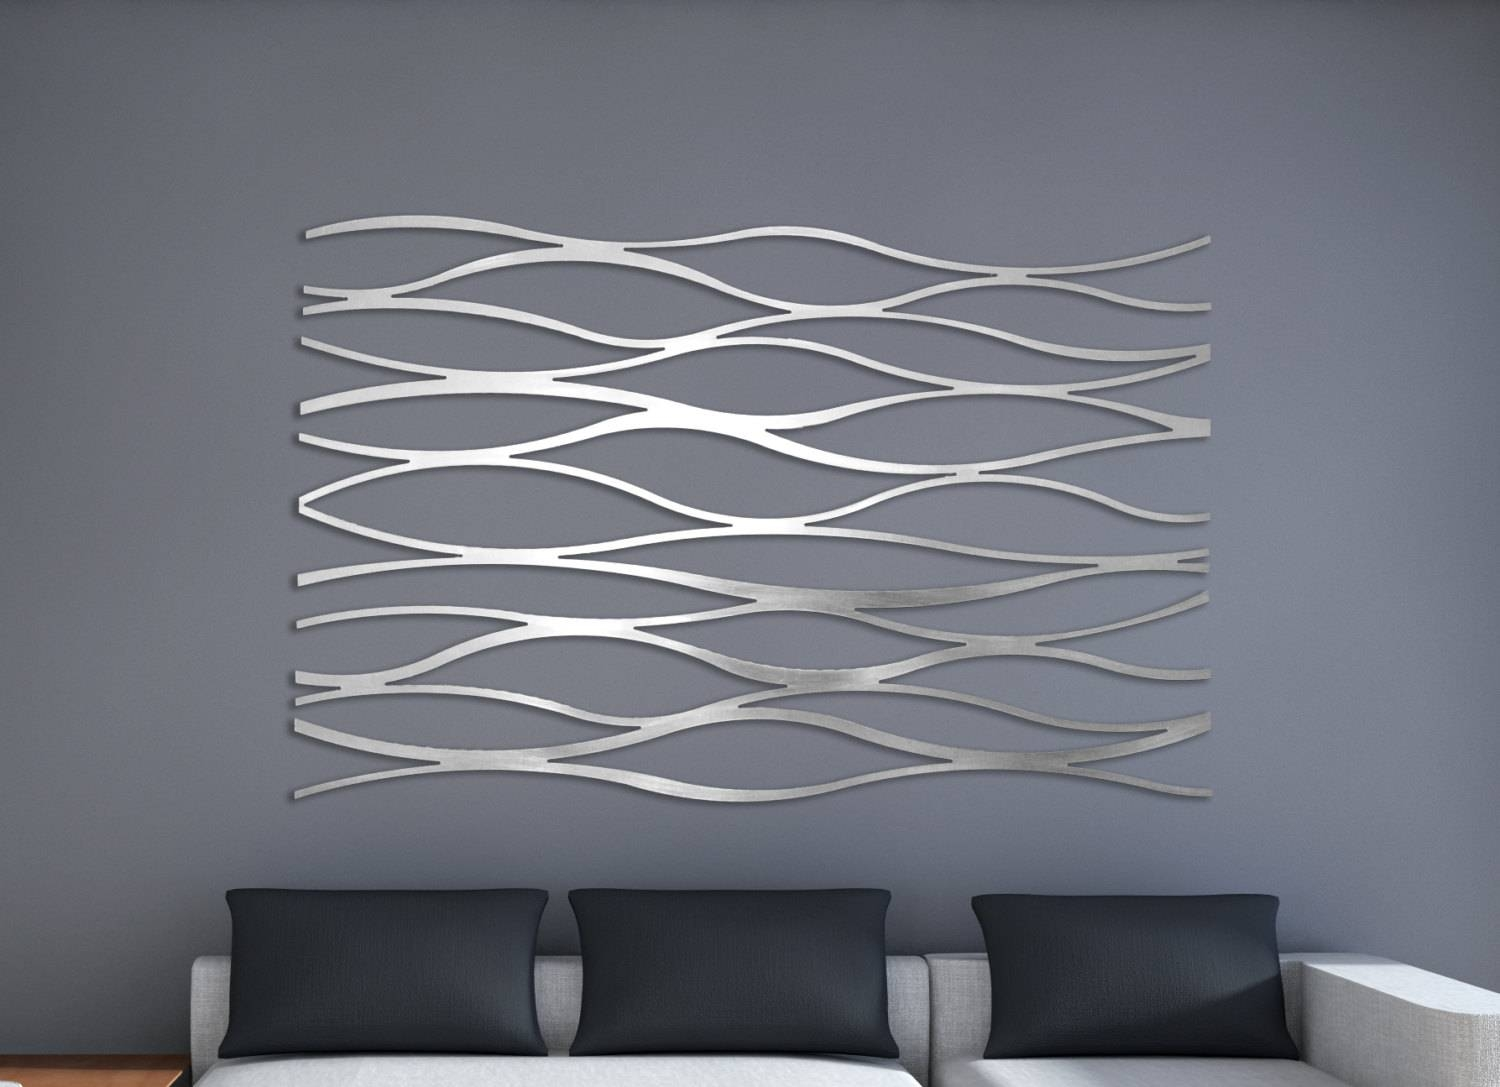 Laser Cut Metal Decorative Wall Art Panel Sculpture For Home Throughout Most Current Laser Cut Metal Wall Art (View 9 of 20)